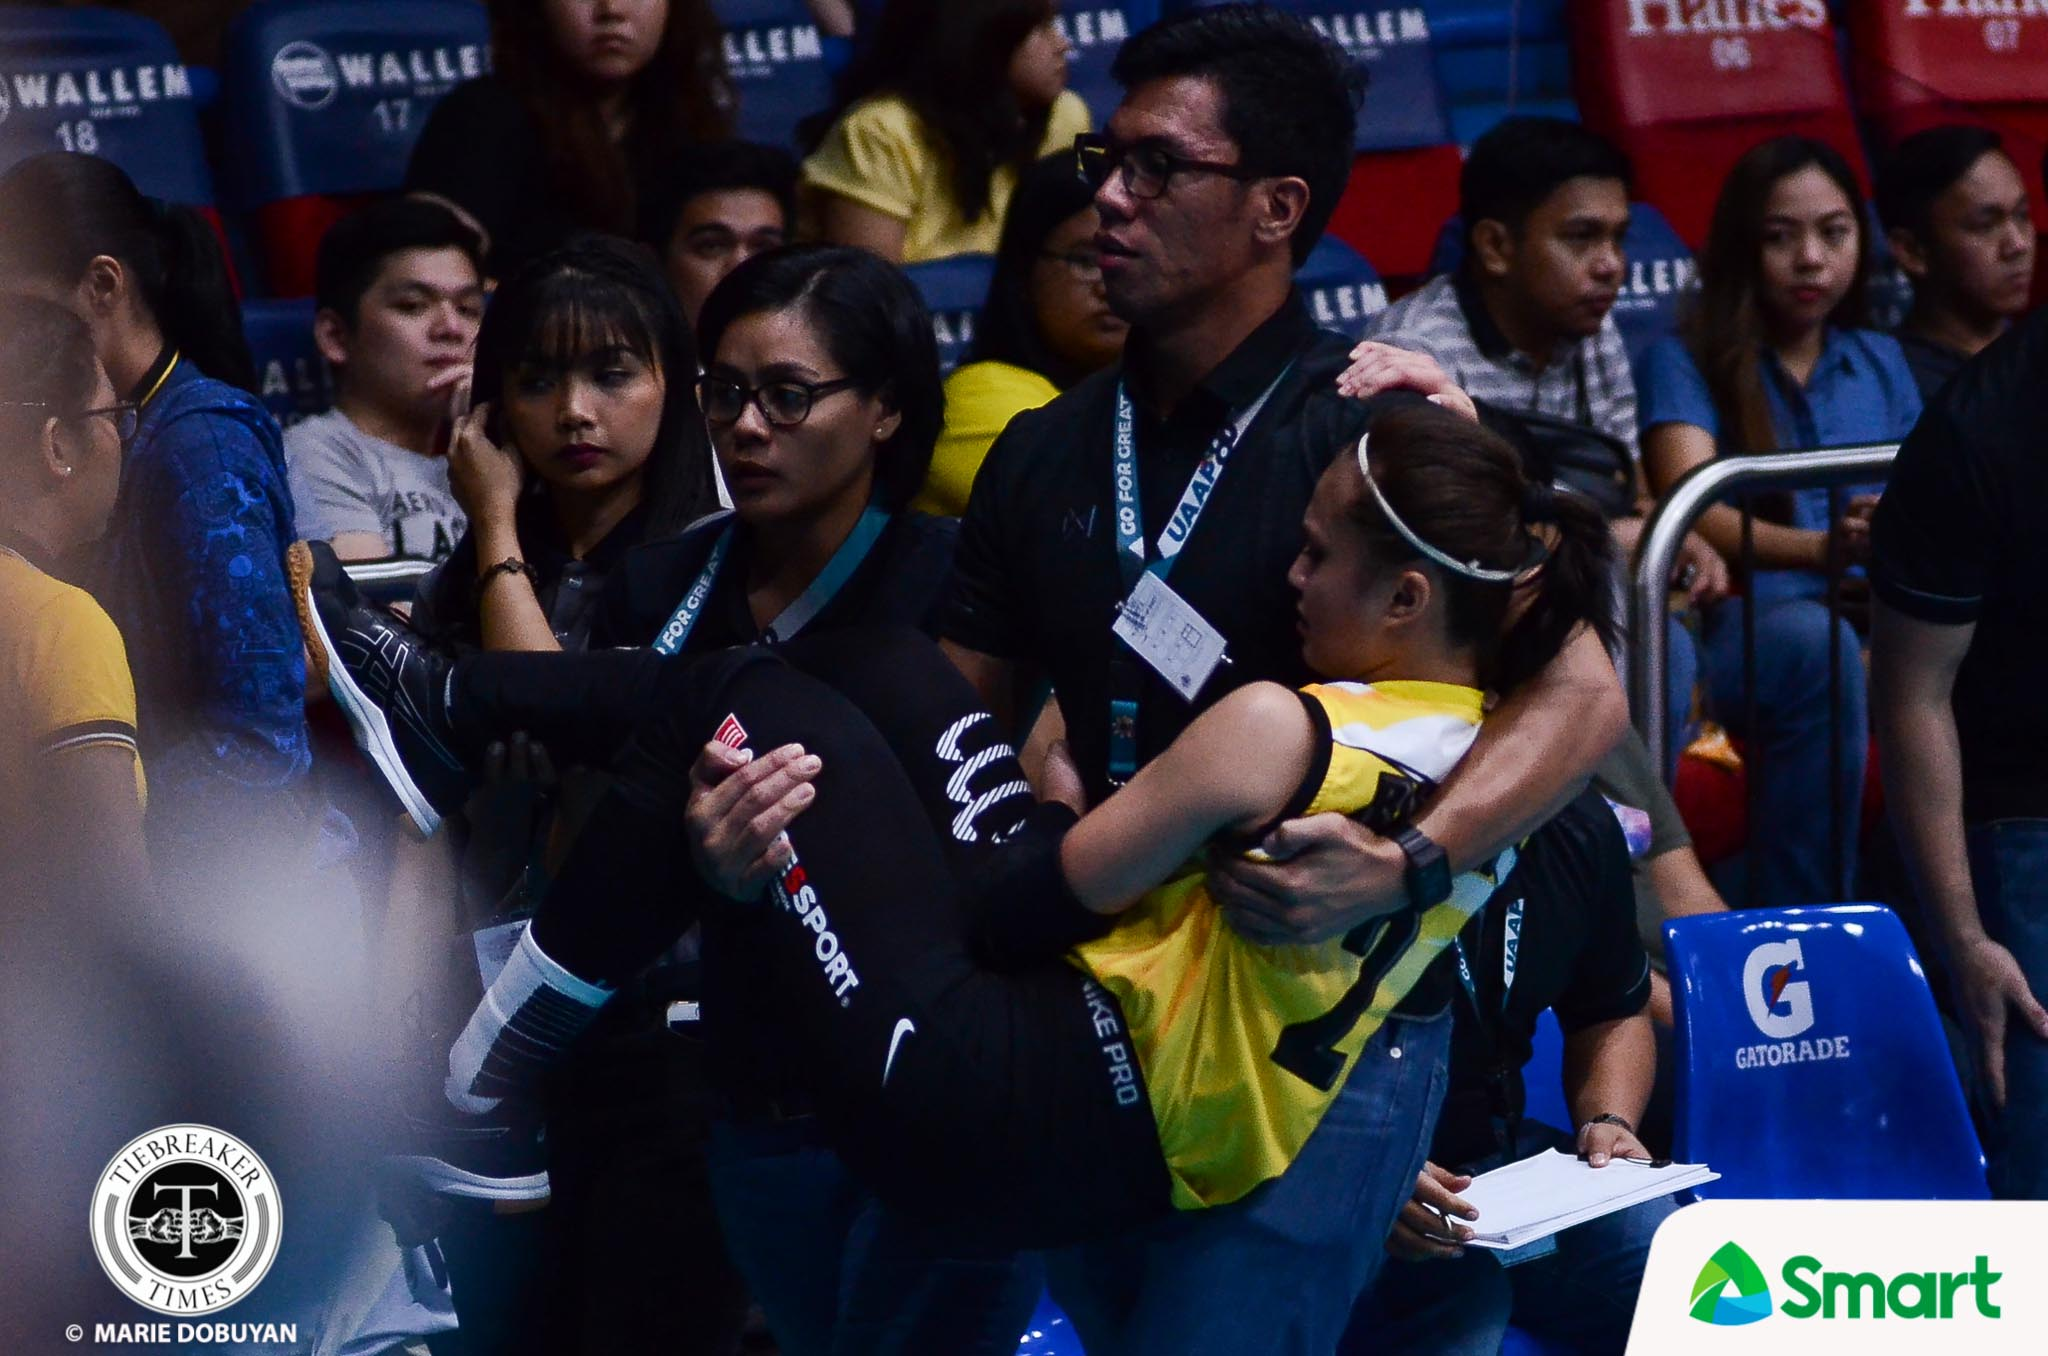 Tiebreaker Times Rica Rivera carried off the court after apparent knee injury News UAAP UST Volleyball  UST Women's Volleyball UAAP Season 80 Women's Volleyball UAAP Season 80 Rica Rivera